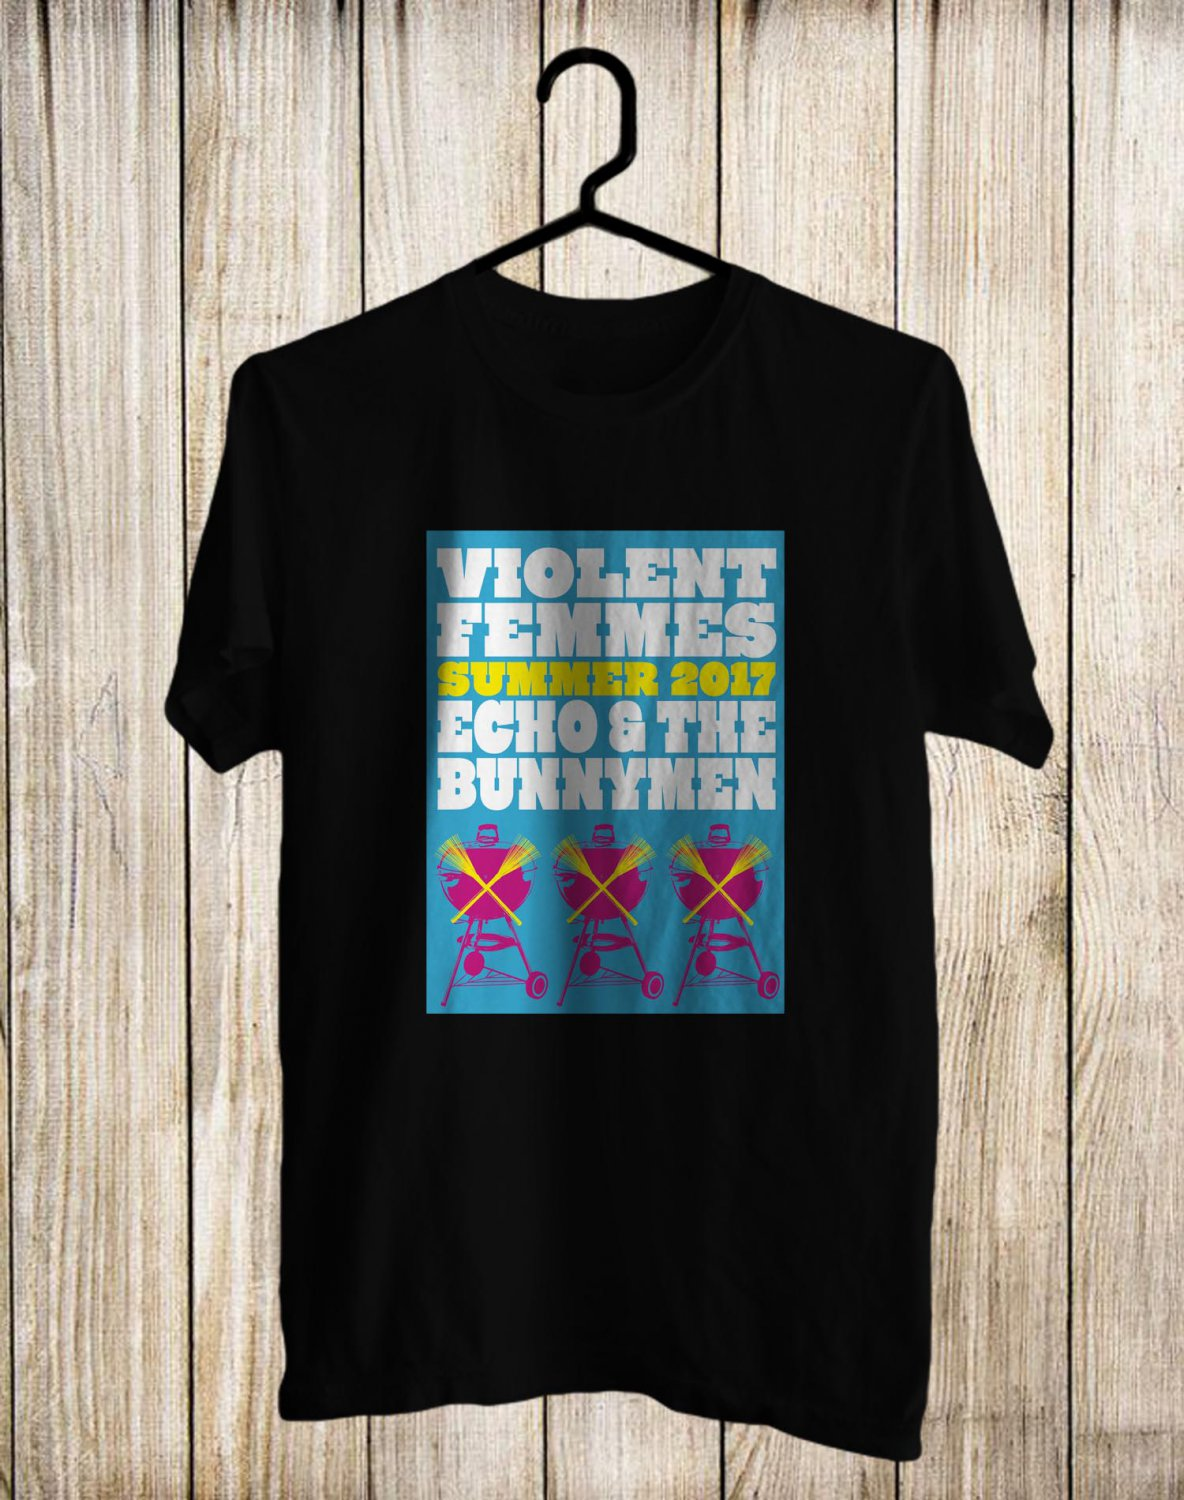 Violent Femmes and Echo&The Bunnymen Tour 2017 Black Tee's Front Side by Complexart z2